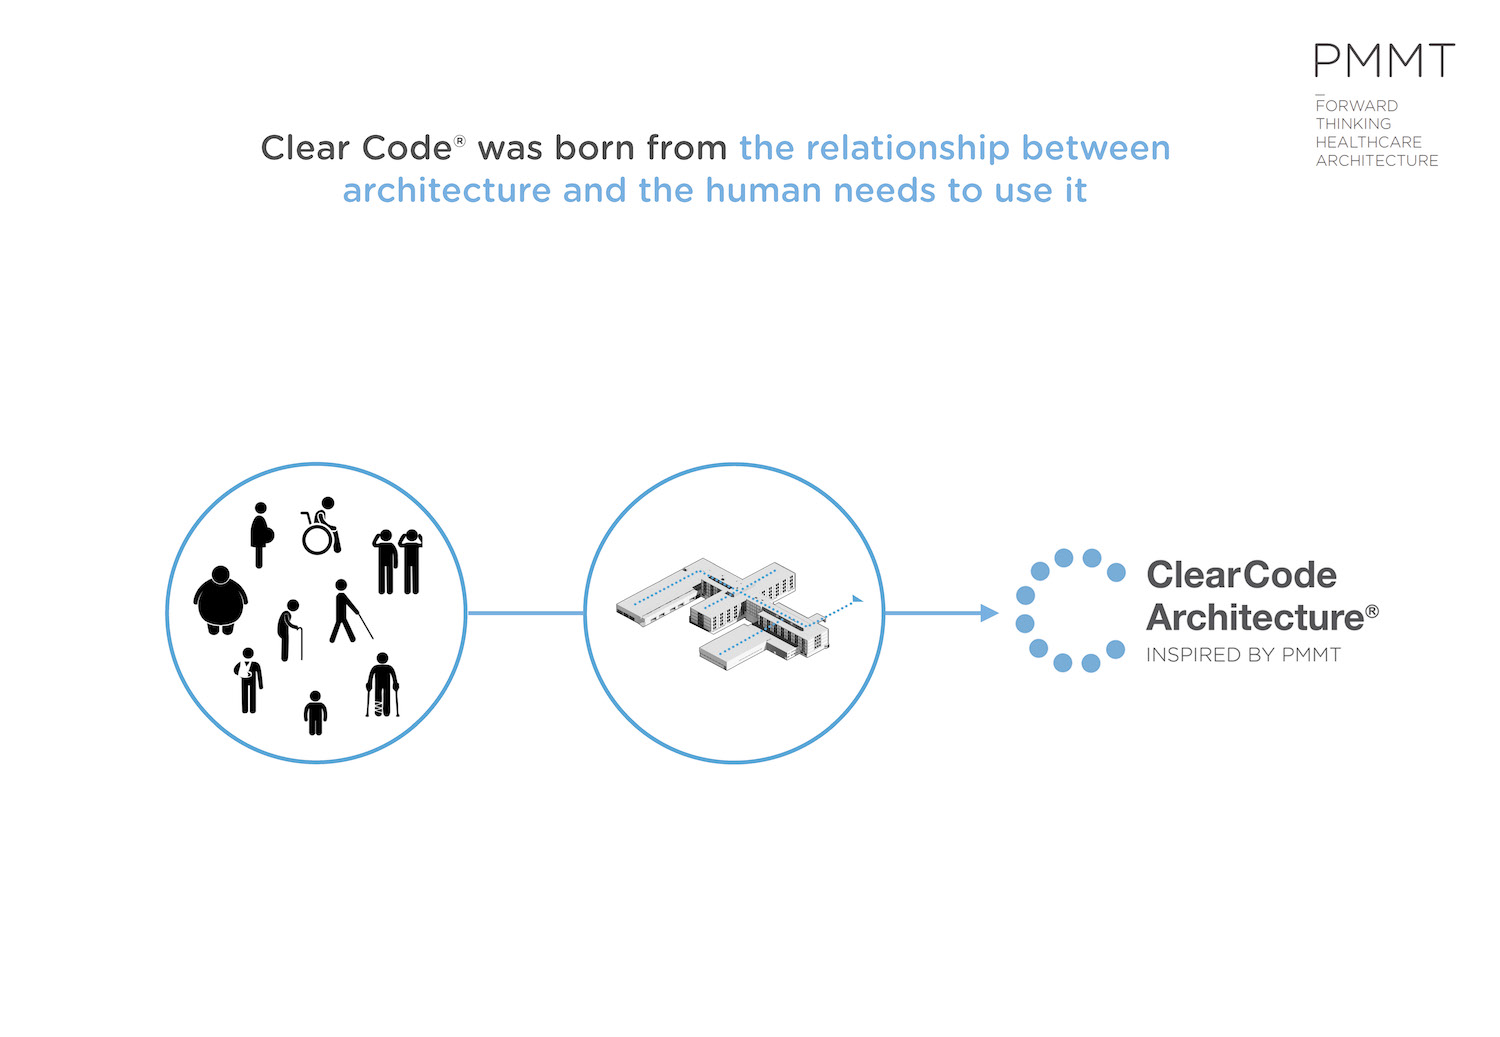 Clear Code brings together human needs and architecture. PMMT Arquitectura}